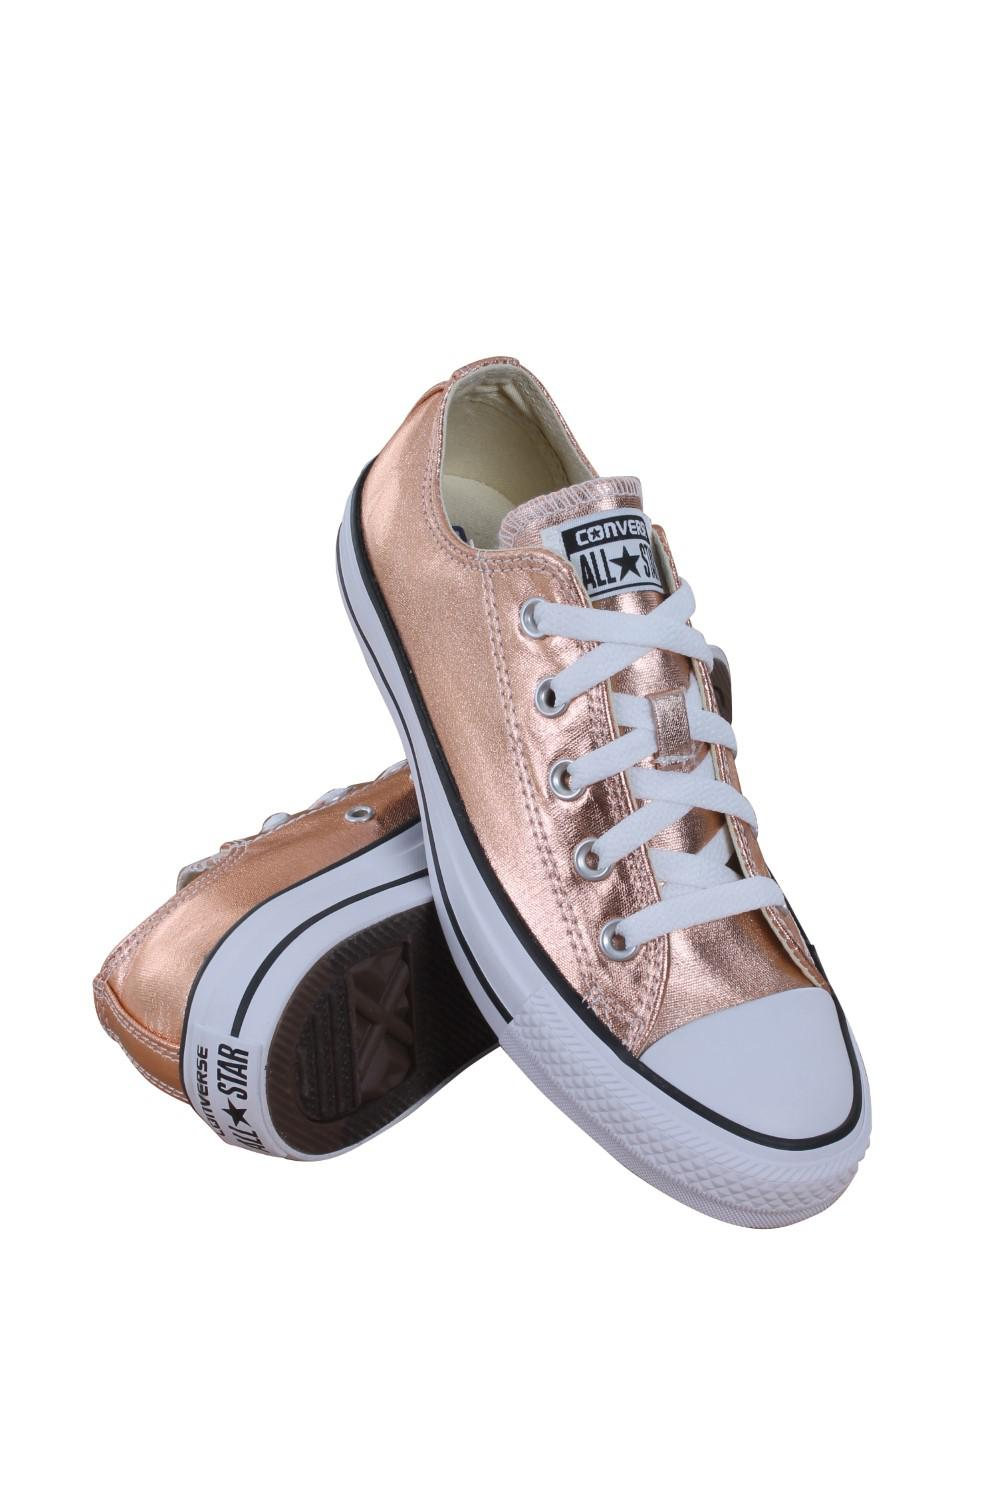 48f5a223bd54ae Gallery. Previously sold at  Jet.com · Women s Converse Chuck Taylor Men s  ...